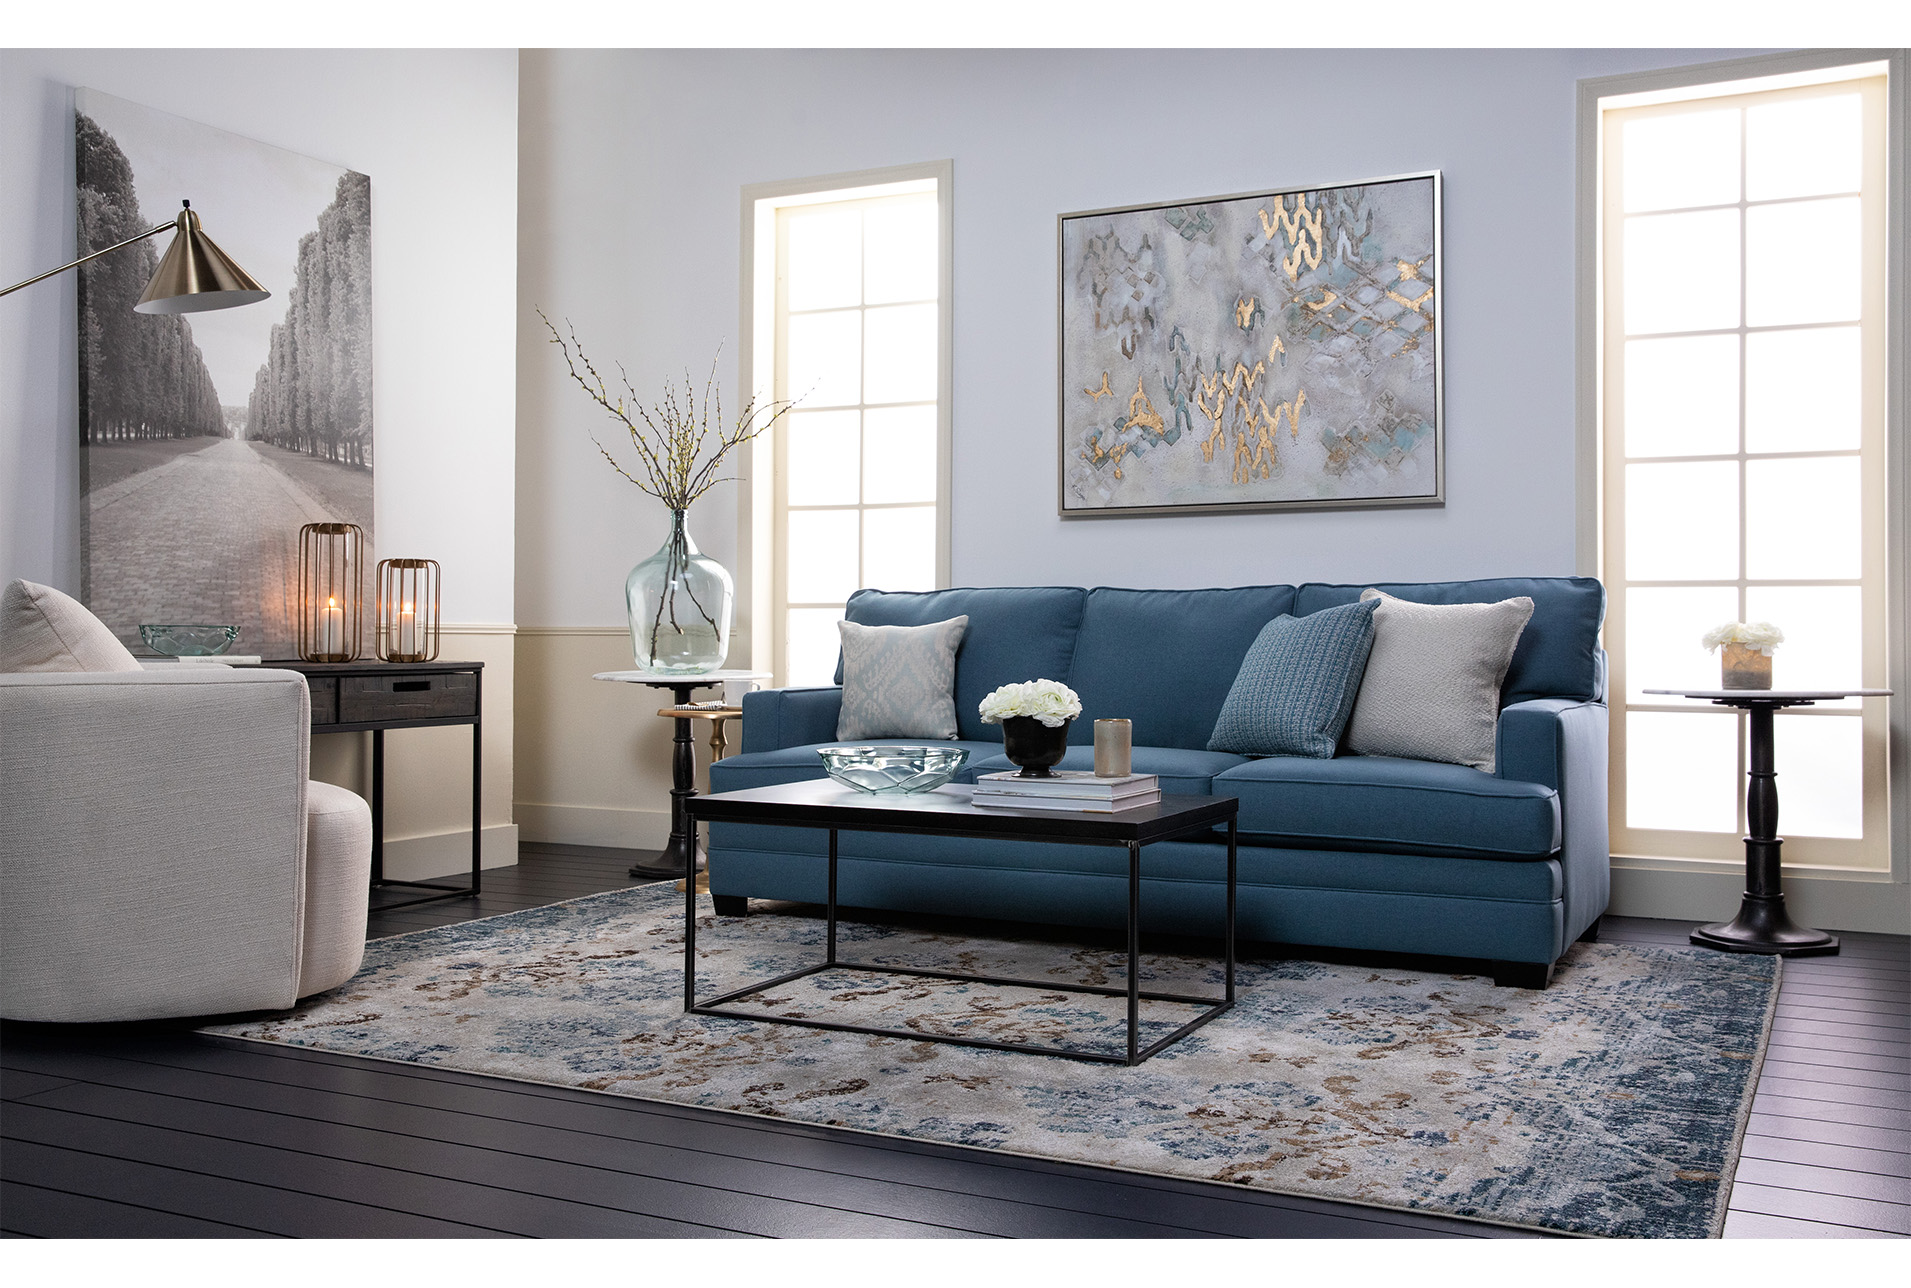 Picture 24x36 Allee Effect By Karyn Millet Living Spaces Sofa